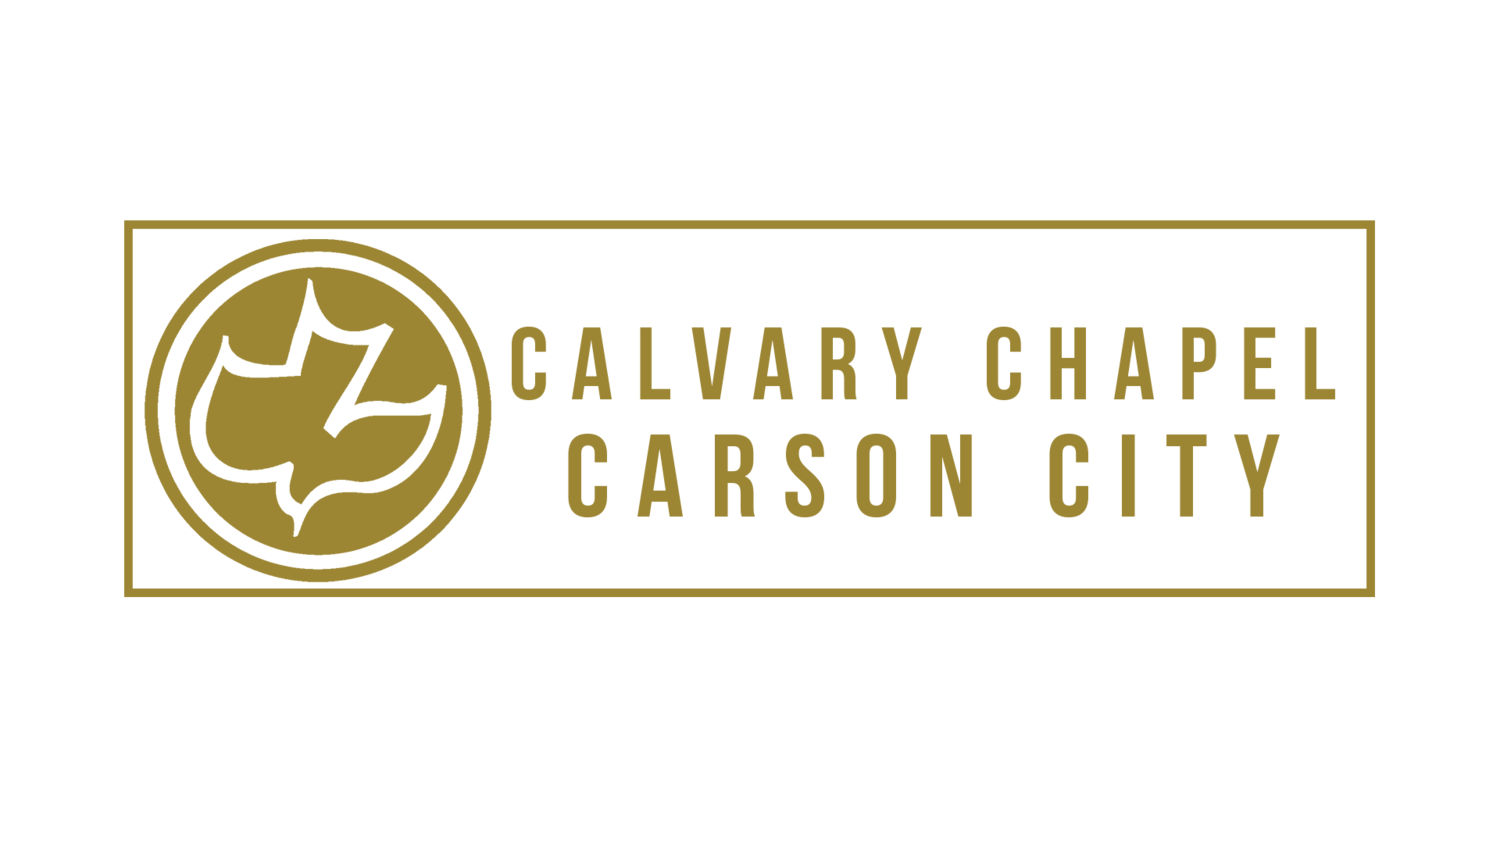 Calvary Chapel Carson City | Non-denominational Church